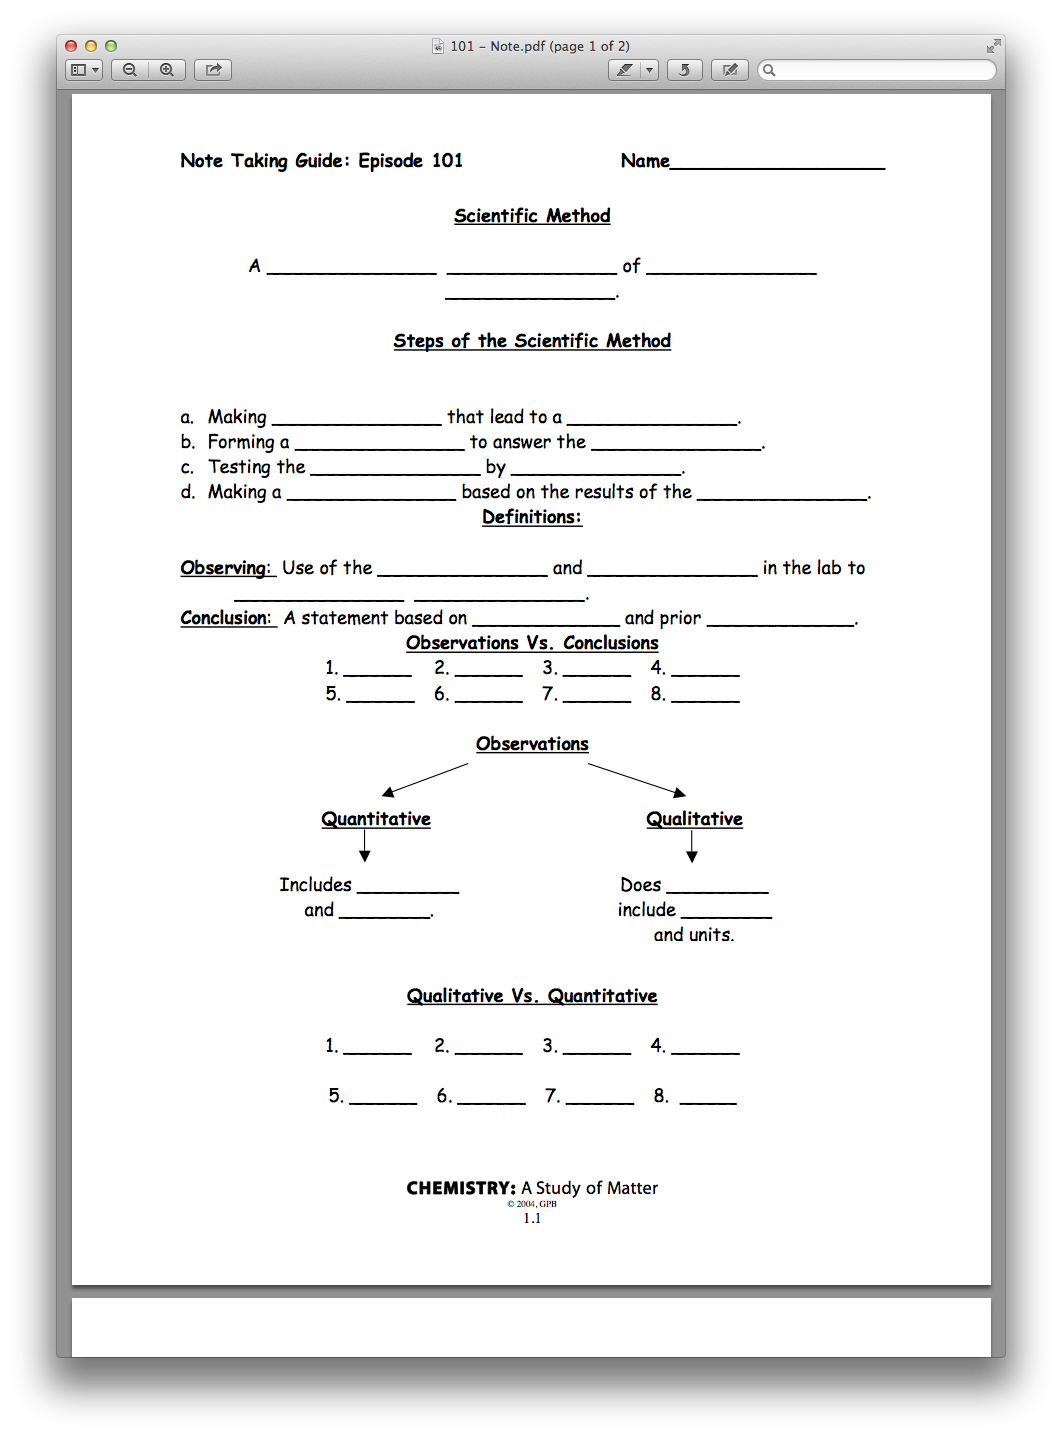 Chemistry Chapter 01, Lesson 01 - The Scientific Method